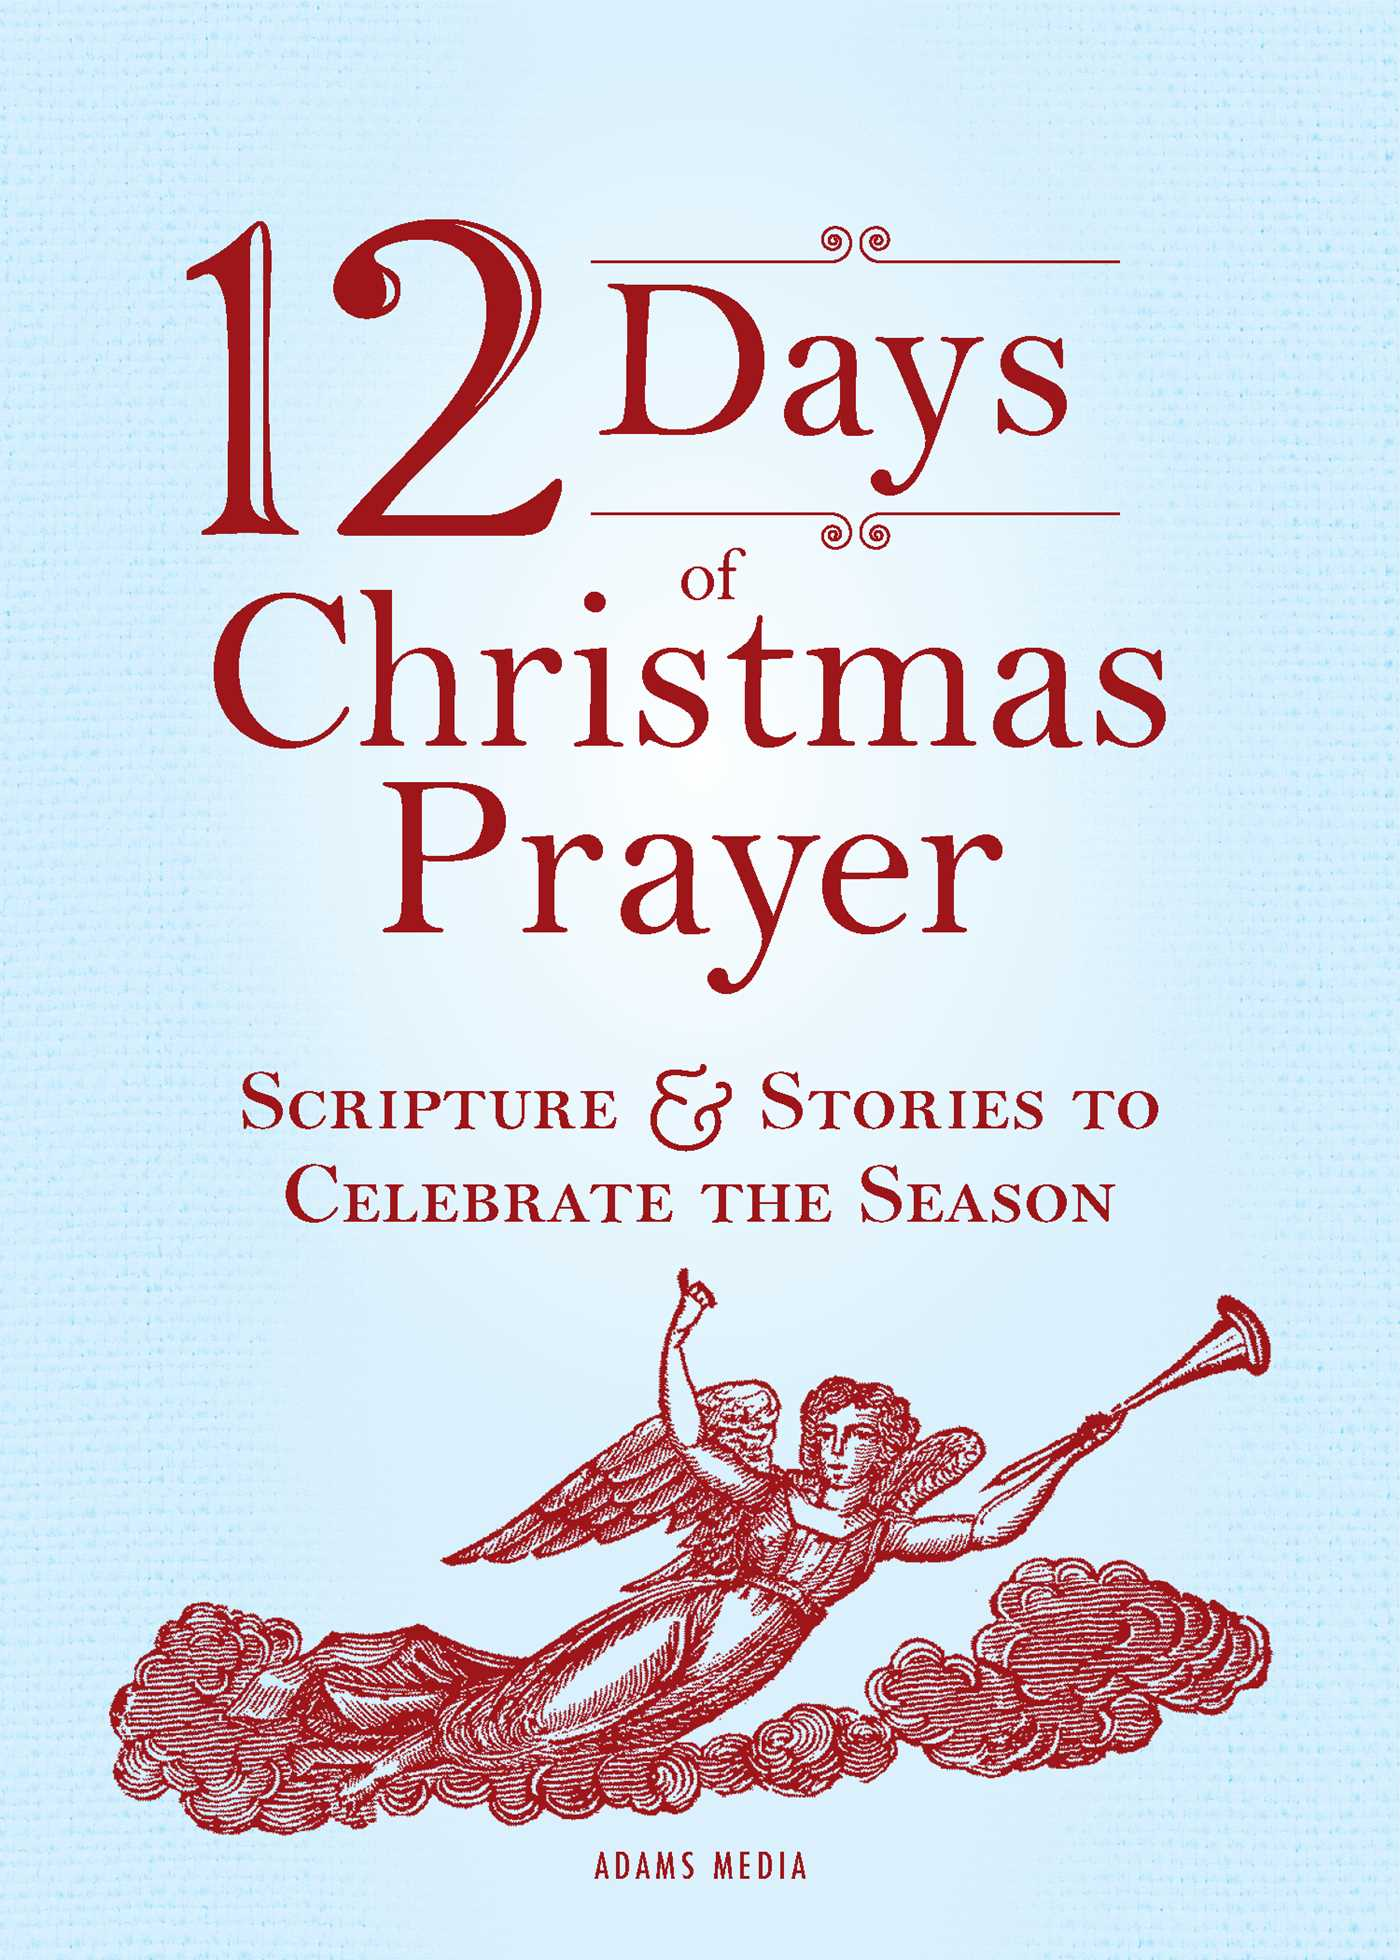 12 days of christmas prayer 9781440534690 hr - When Is The 12 Days Of Christmas